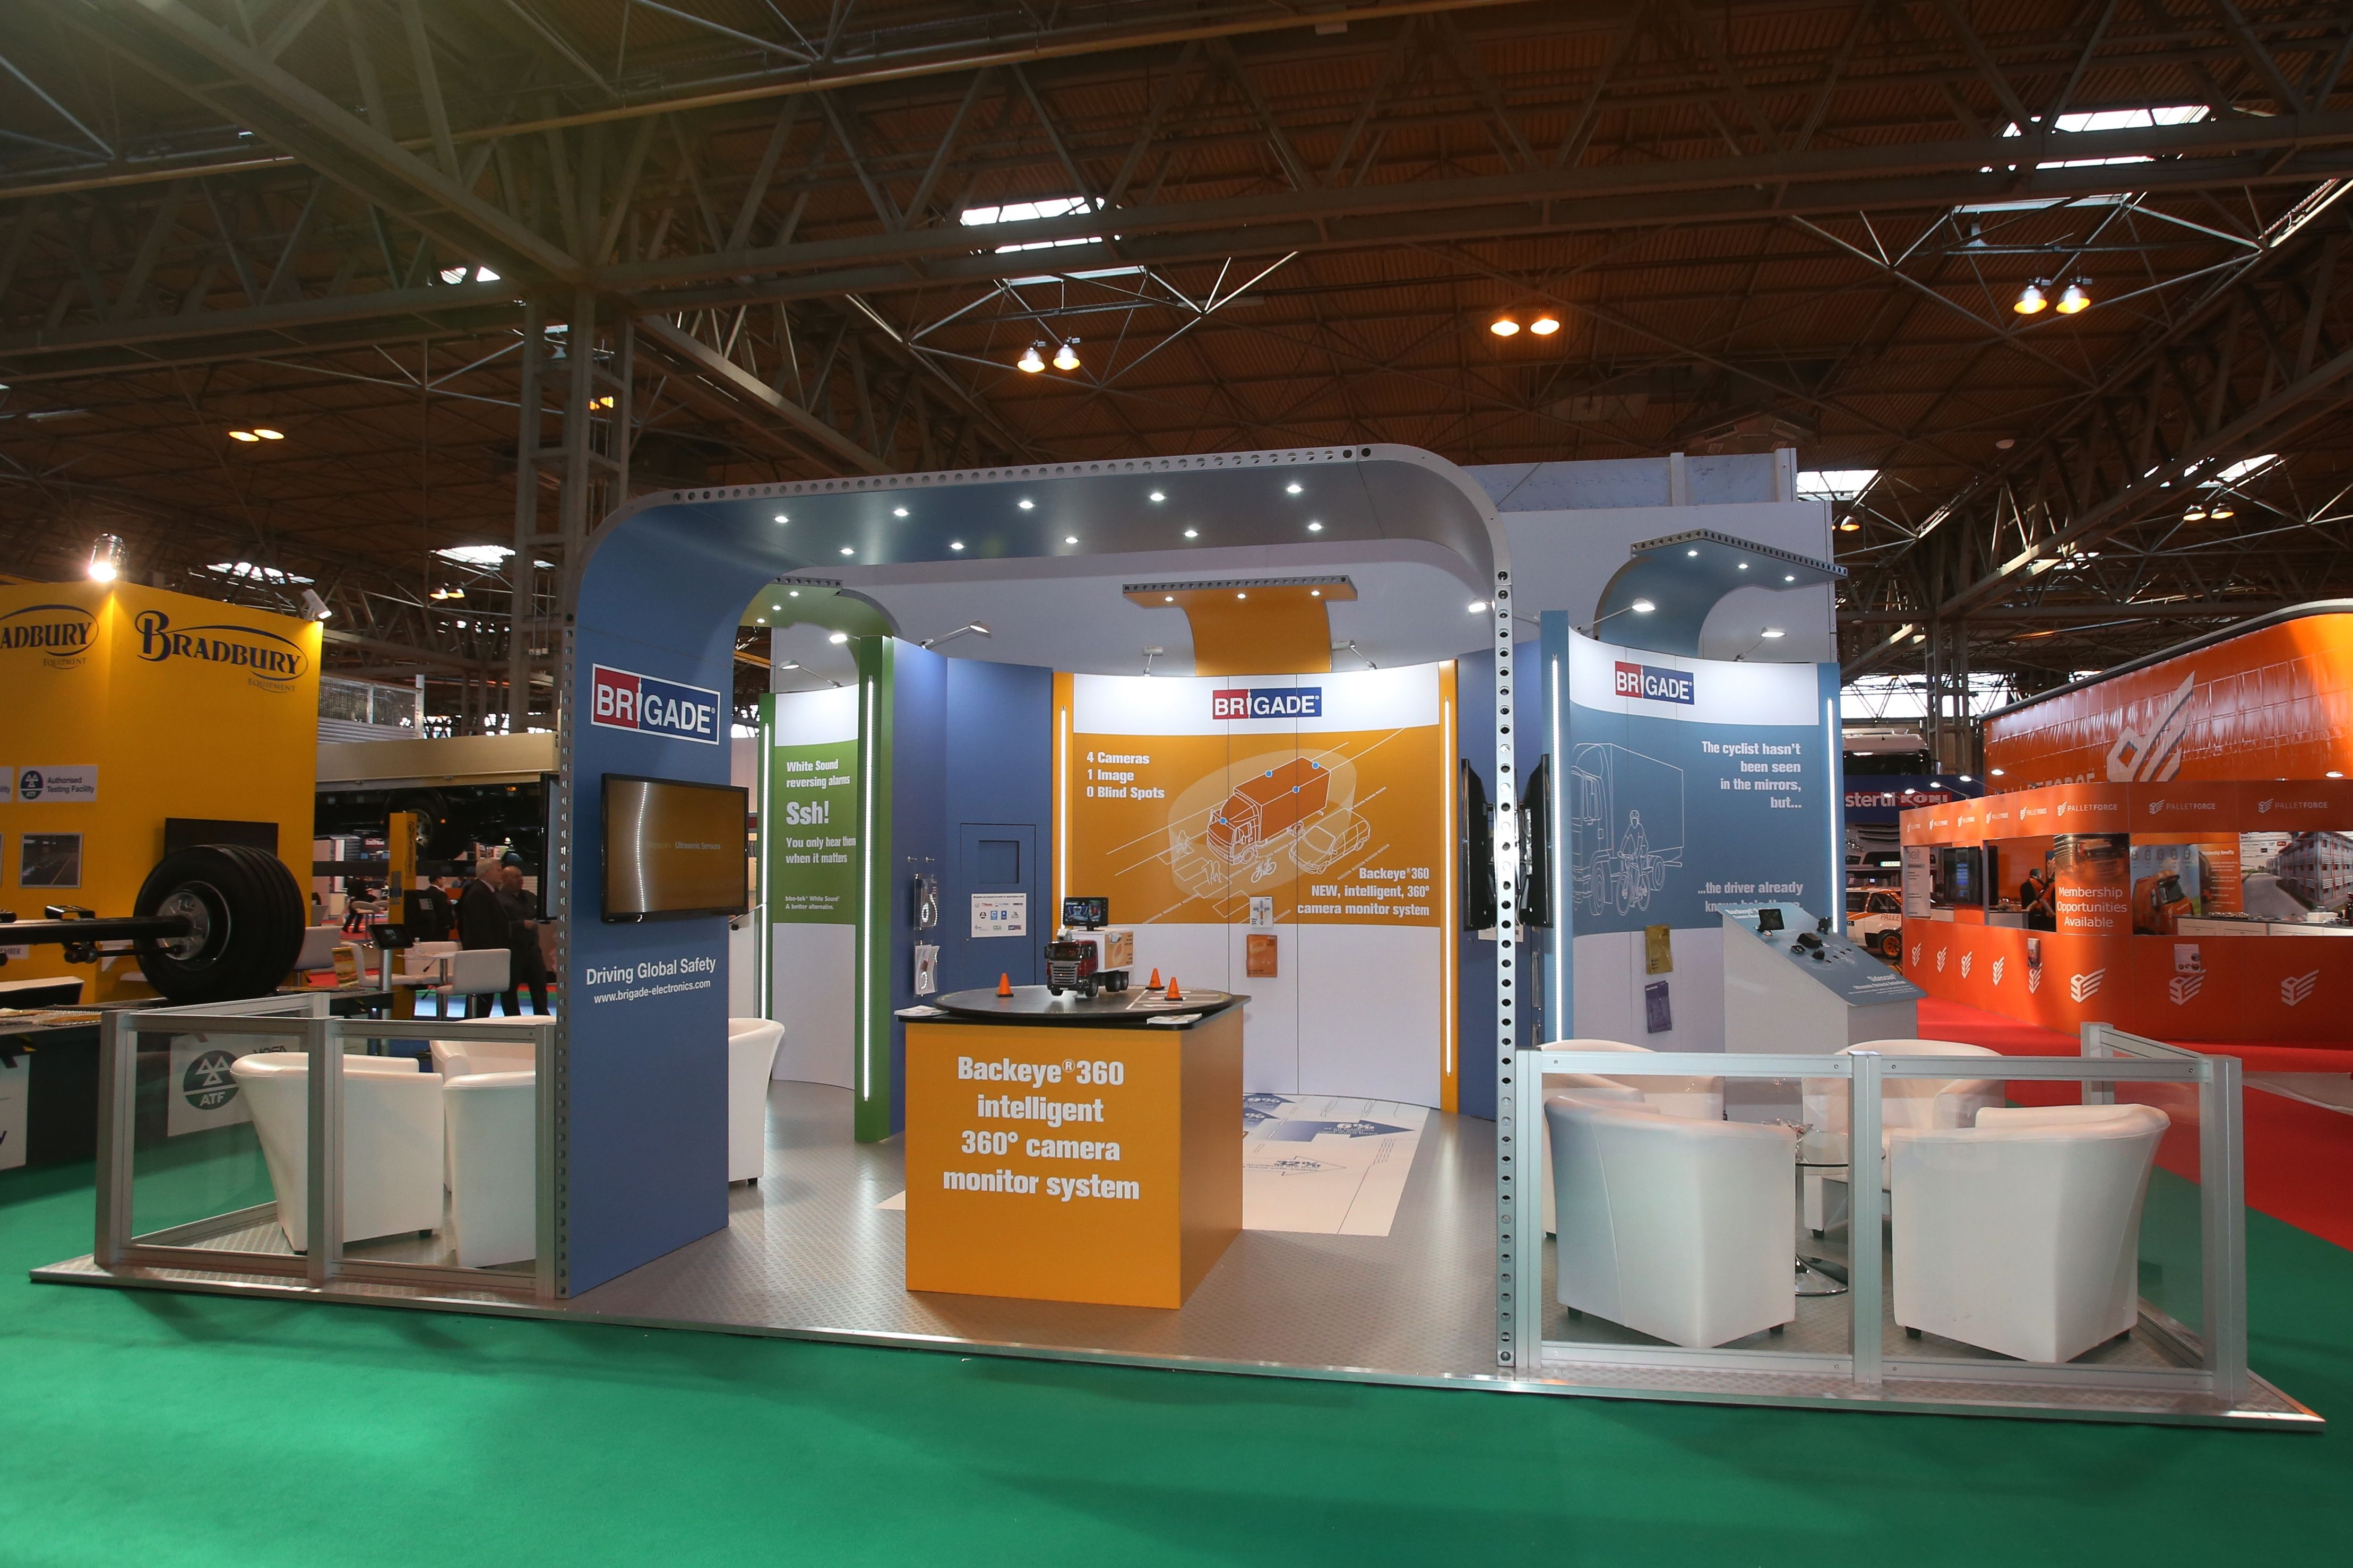 brigade electronics the cv show this stand showcases a brigade electronics the cv show 2015 this stand showcases a number of clips exhibition stand solutions including clip s le kit bematrix purpos